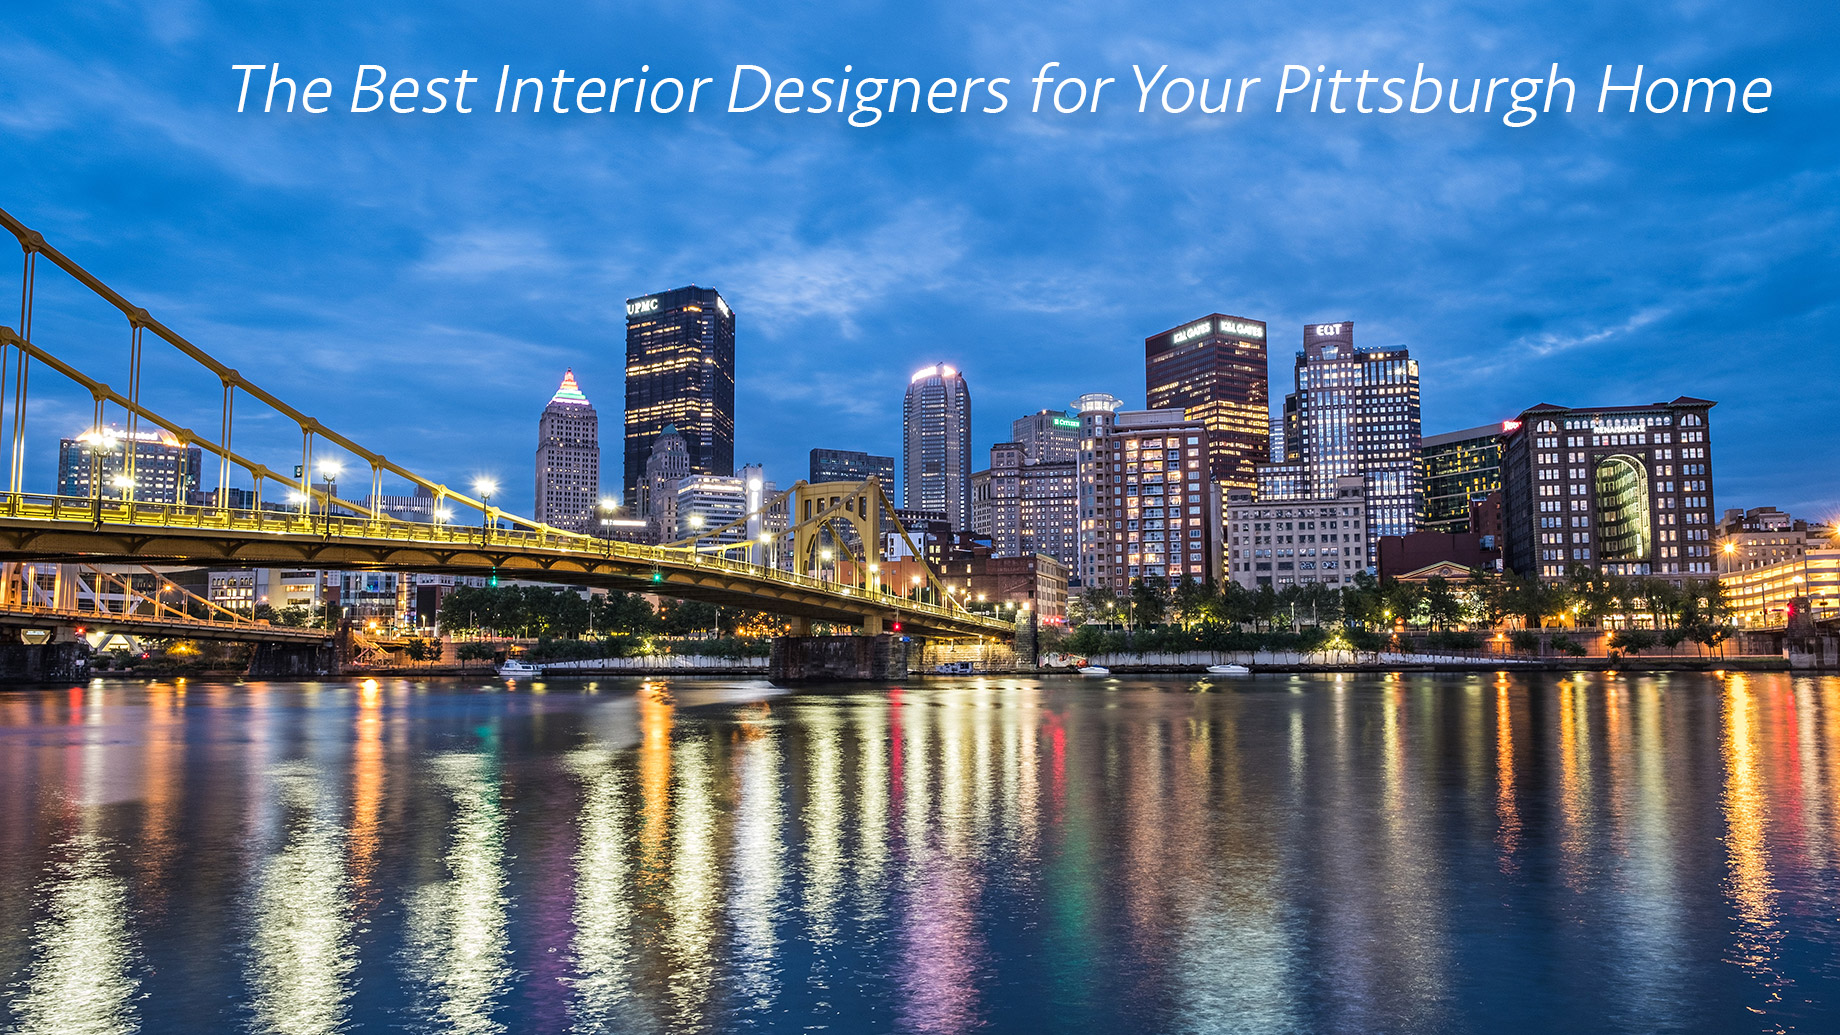 The Best Interior Designers for Your Pittsburgh Home